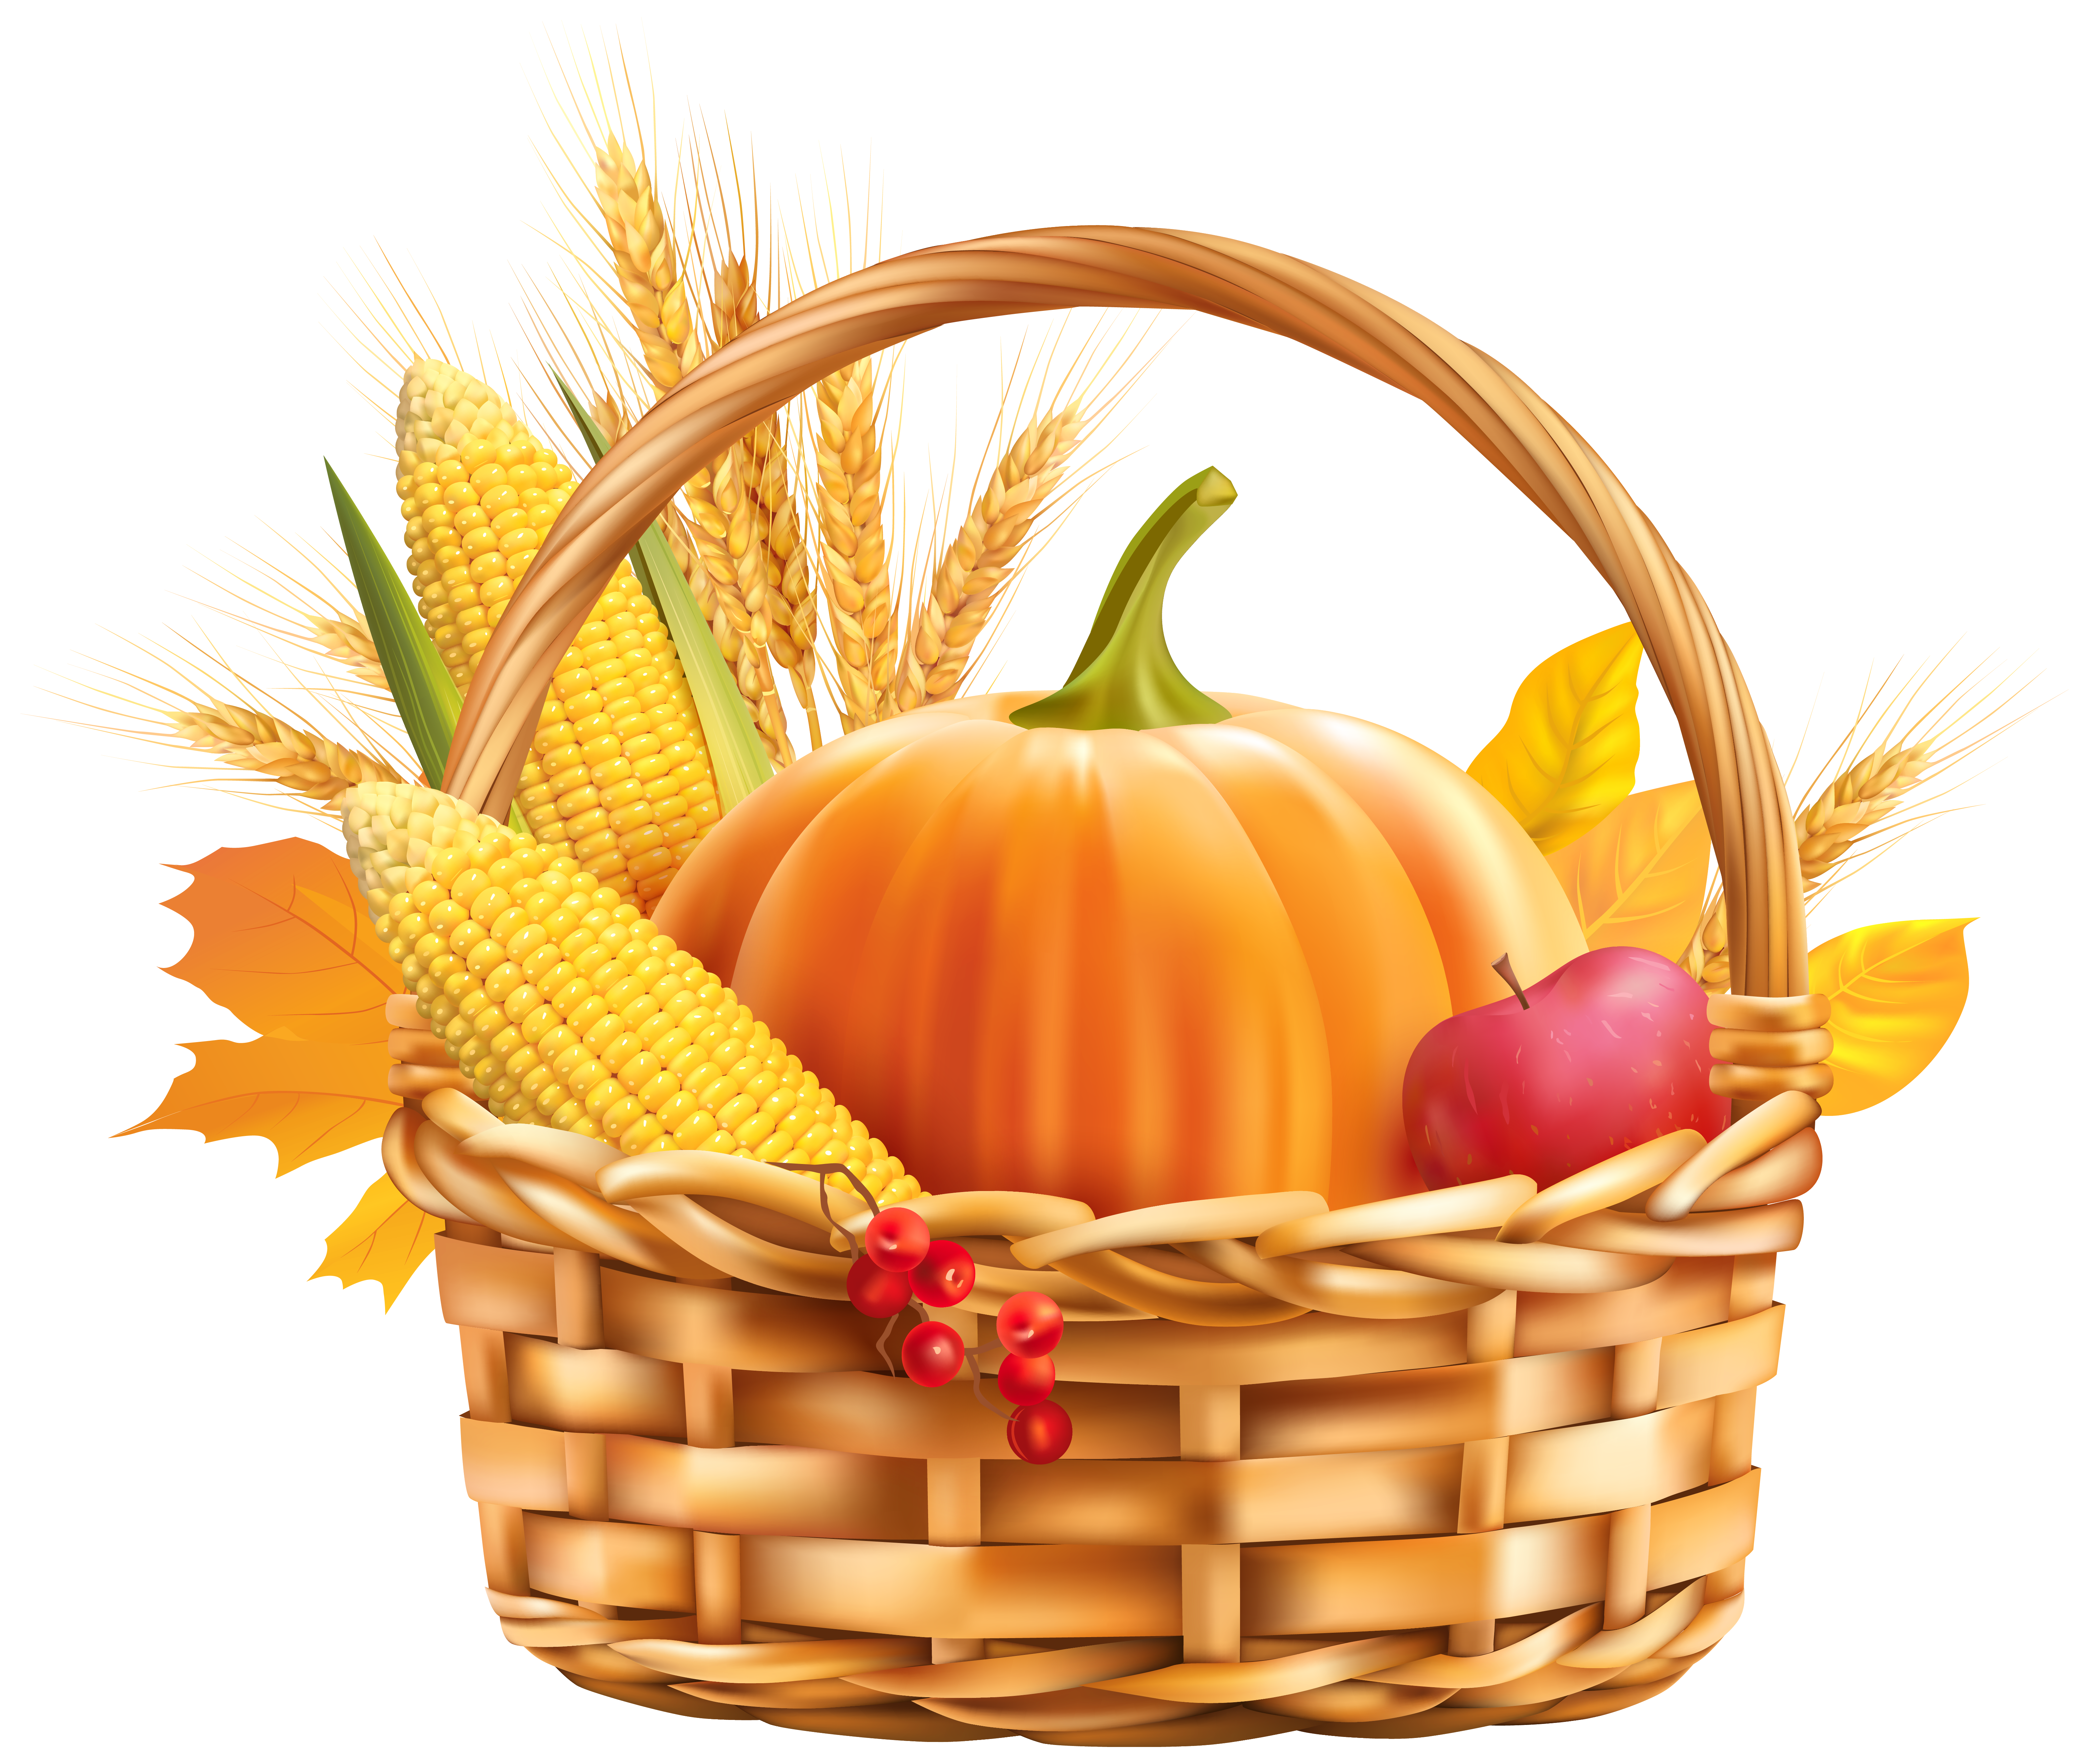 Harvest clipart #2, Download drawings